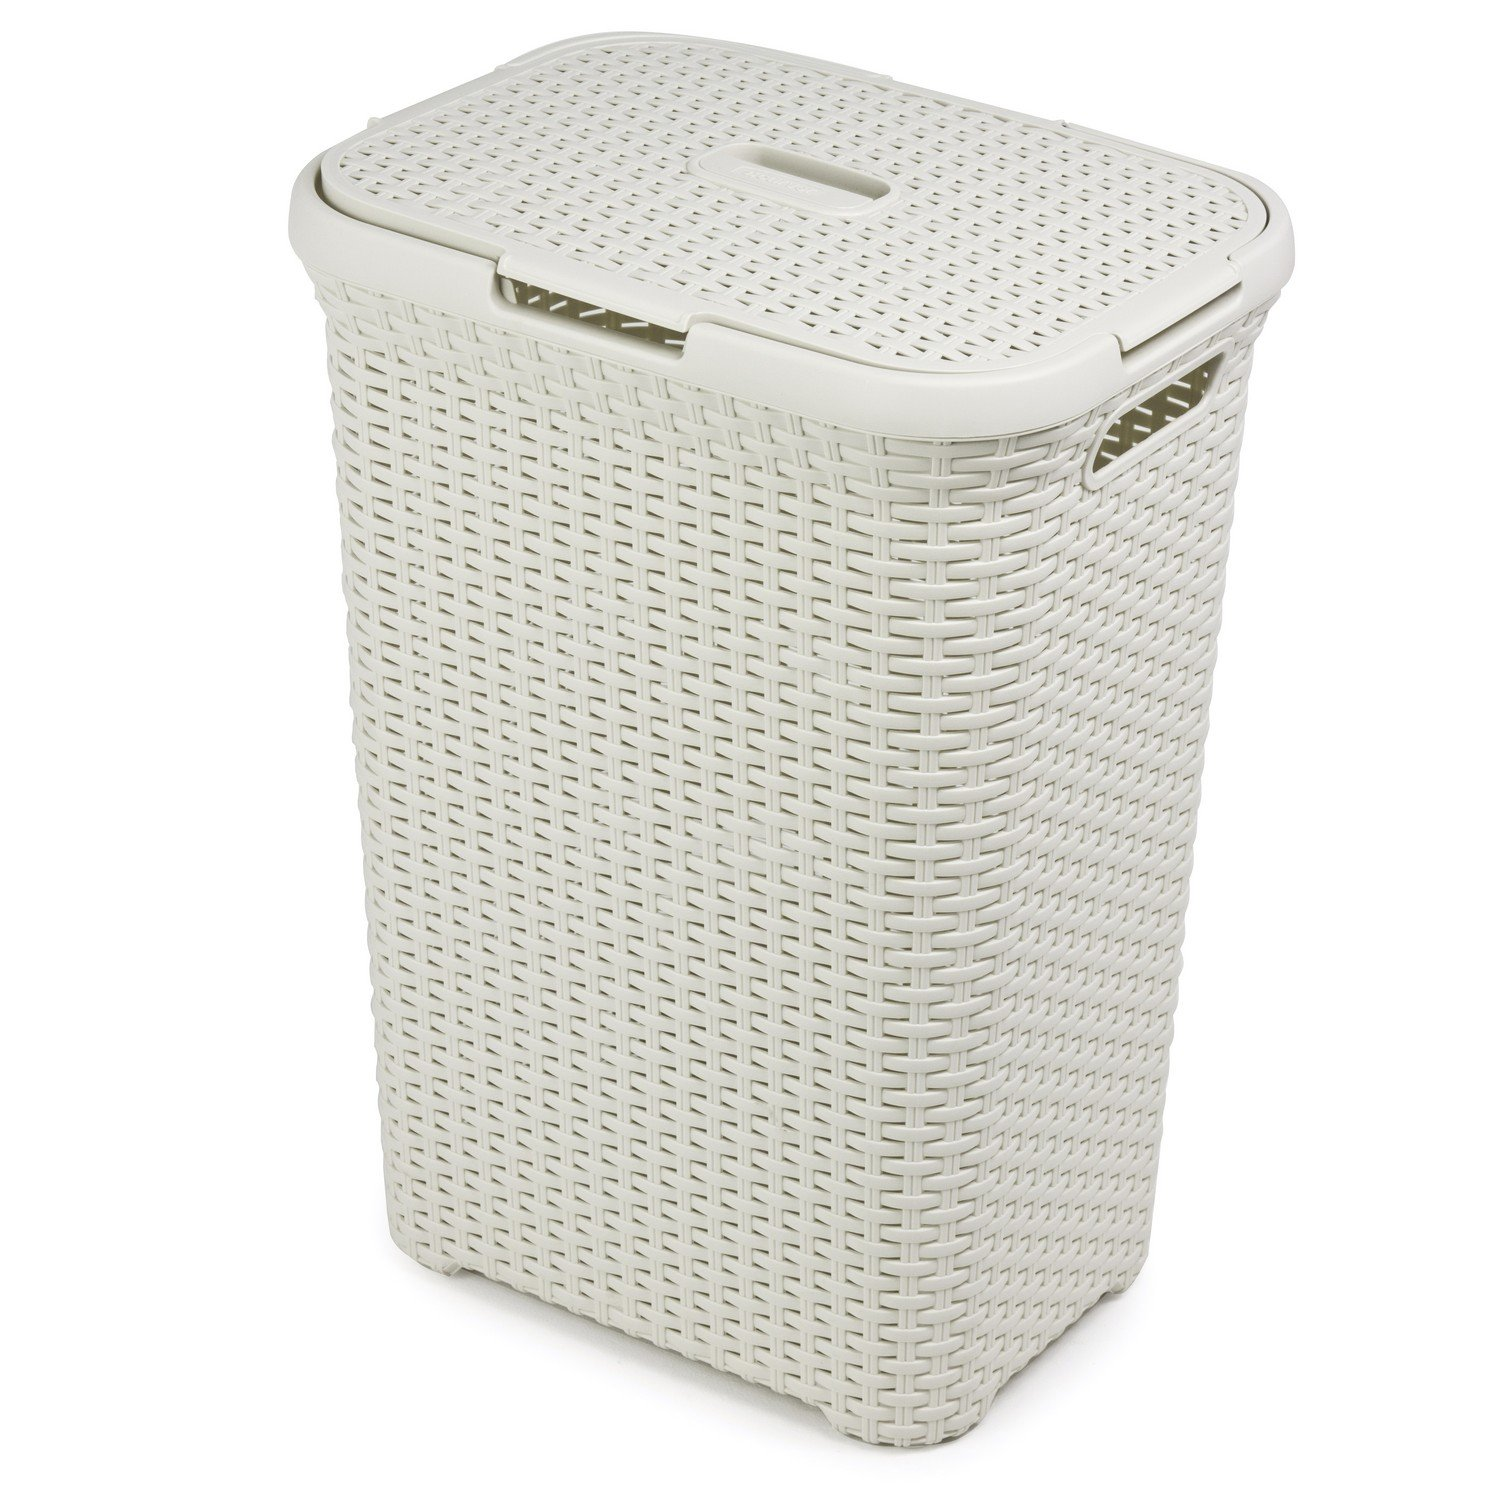 Elegant Laundry Hamper 60 Ltr Rattan Design Laundry Bin Washing Basket Bucket